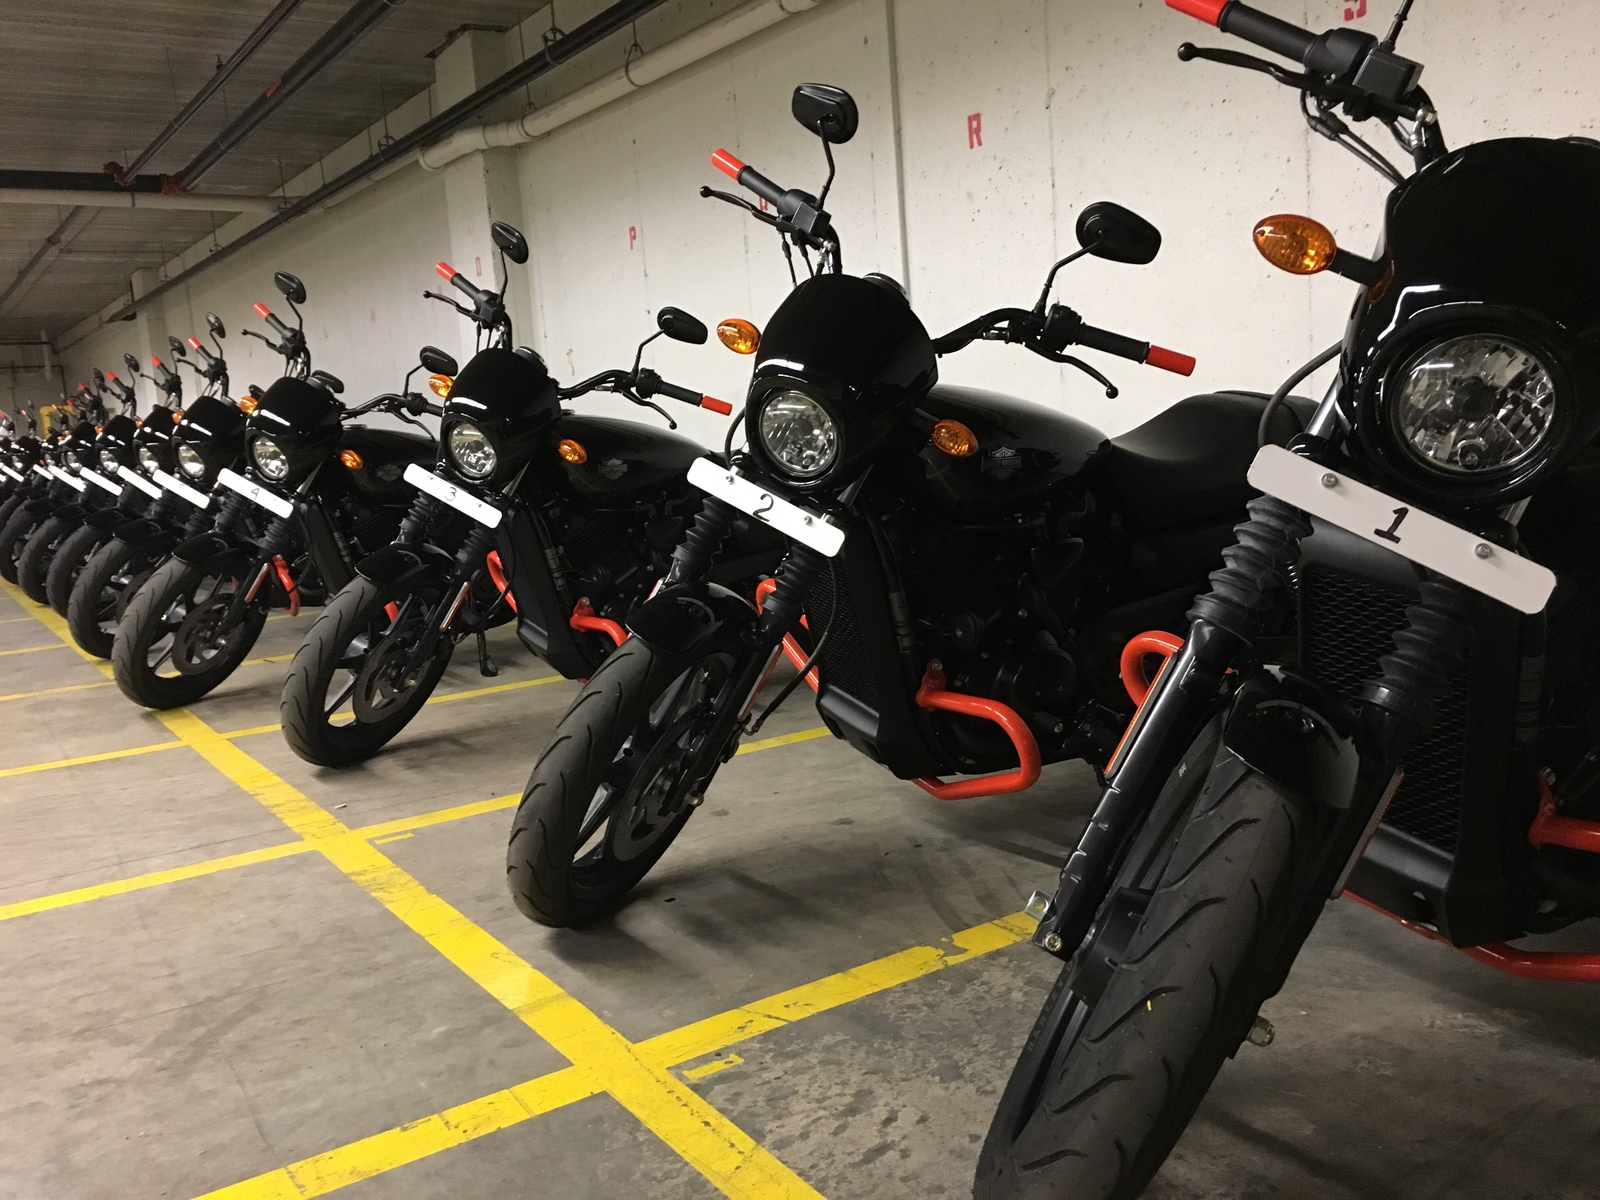 A lineup of black and orange motorcycles.